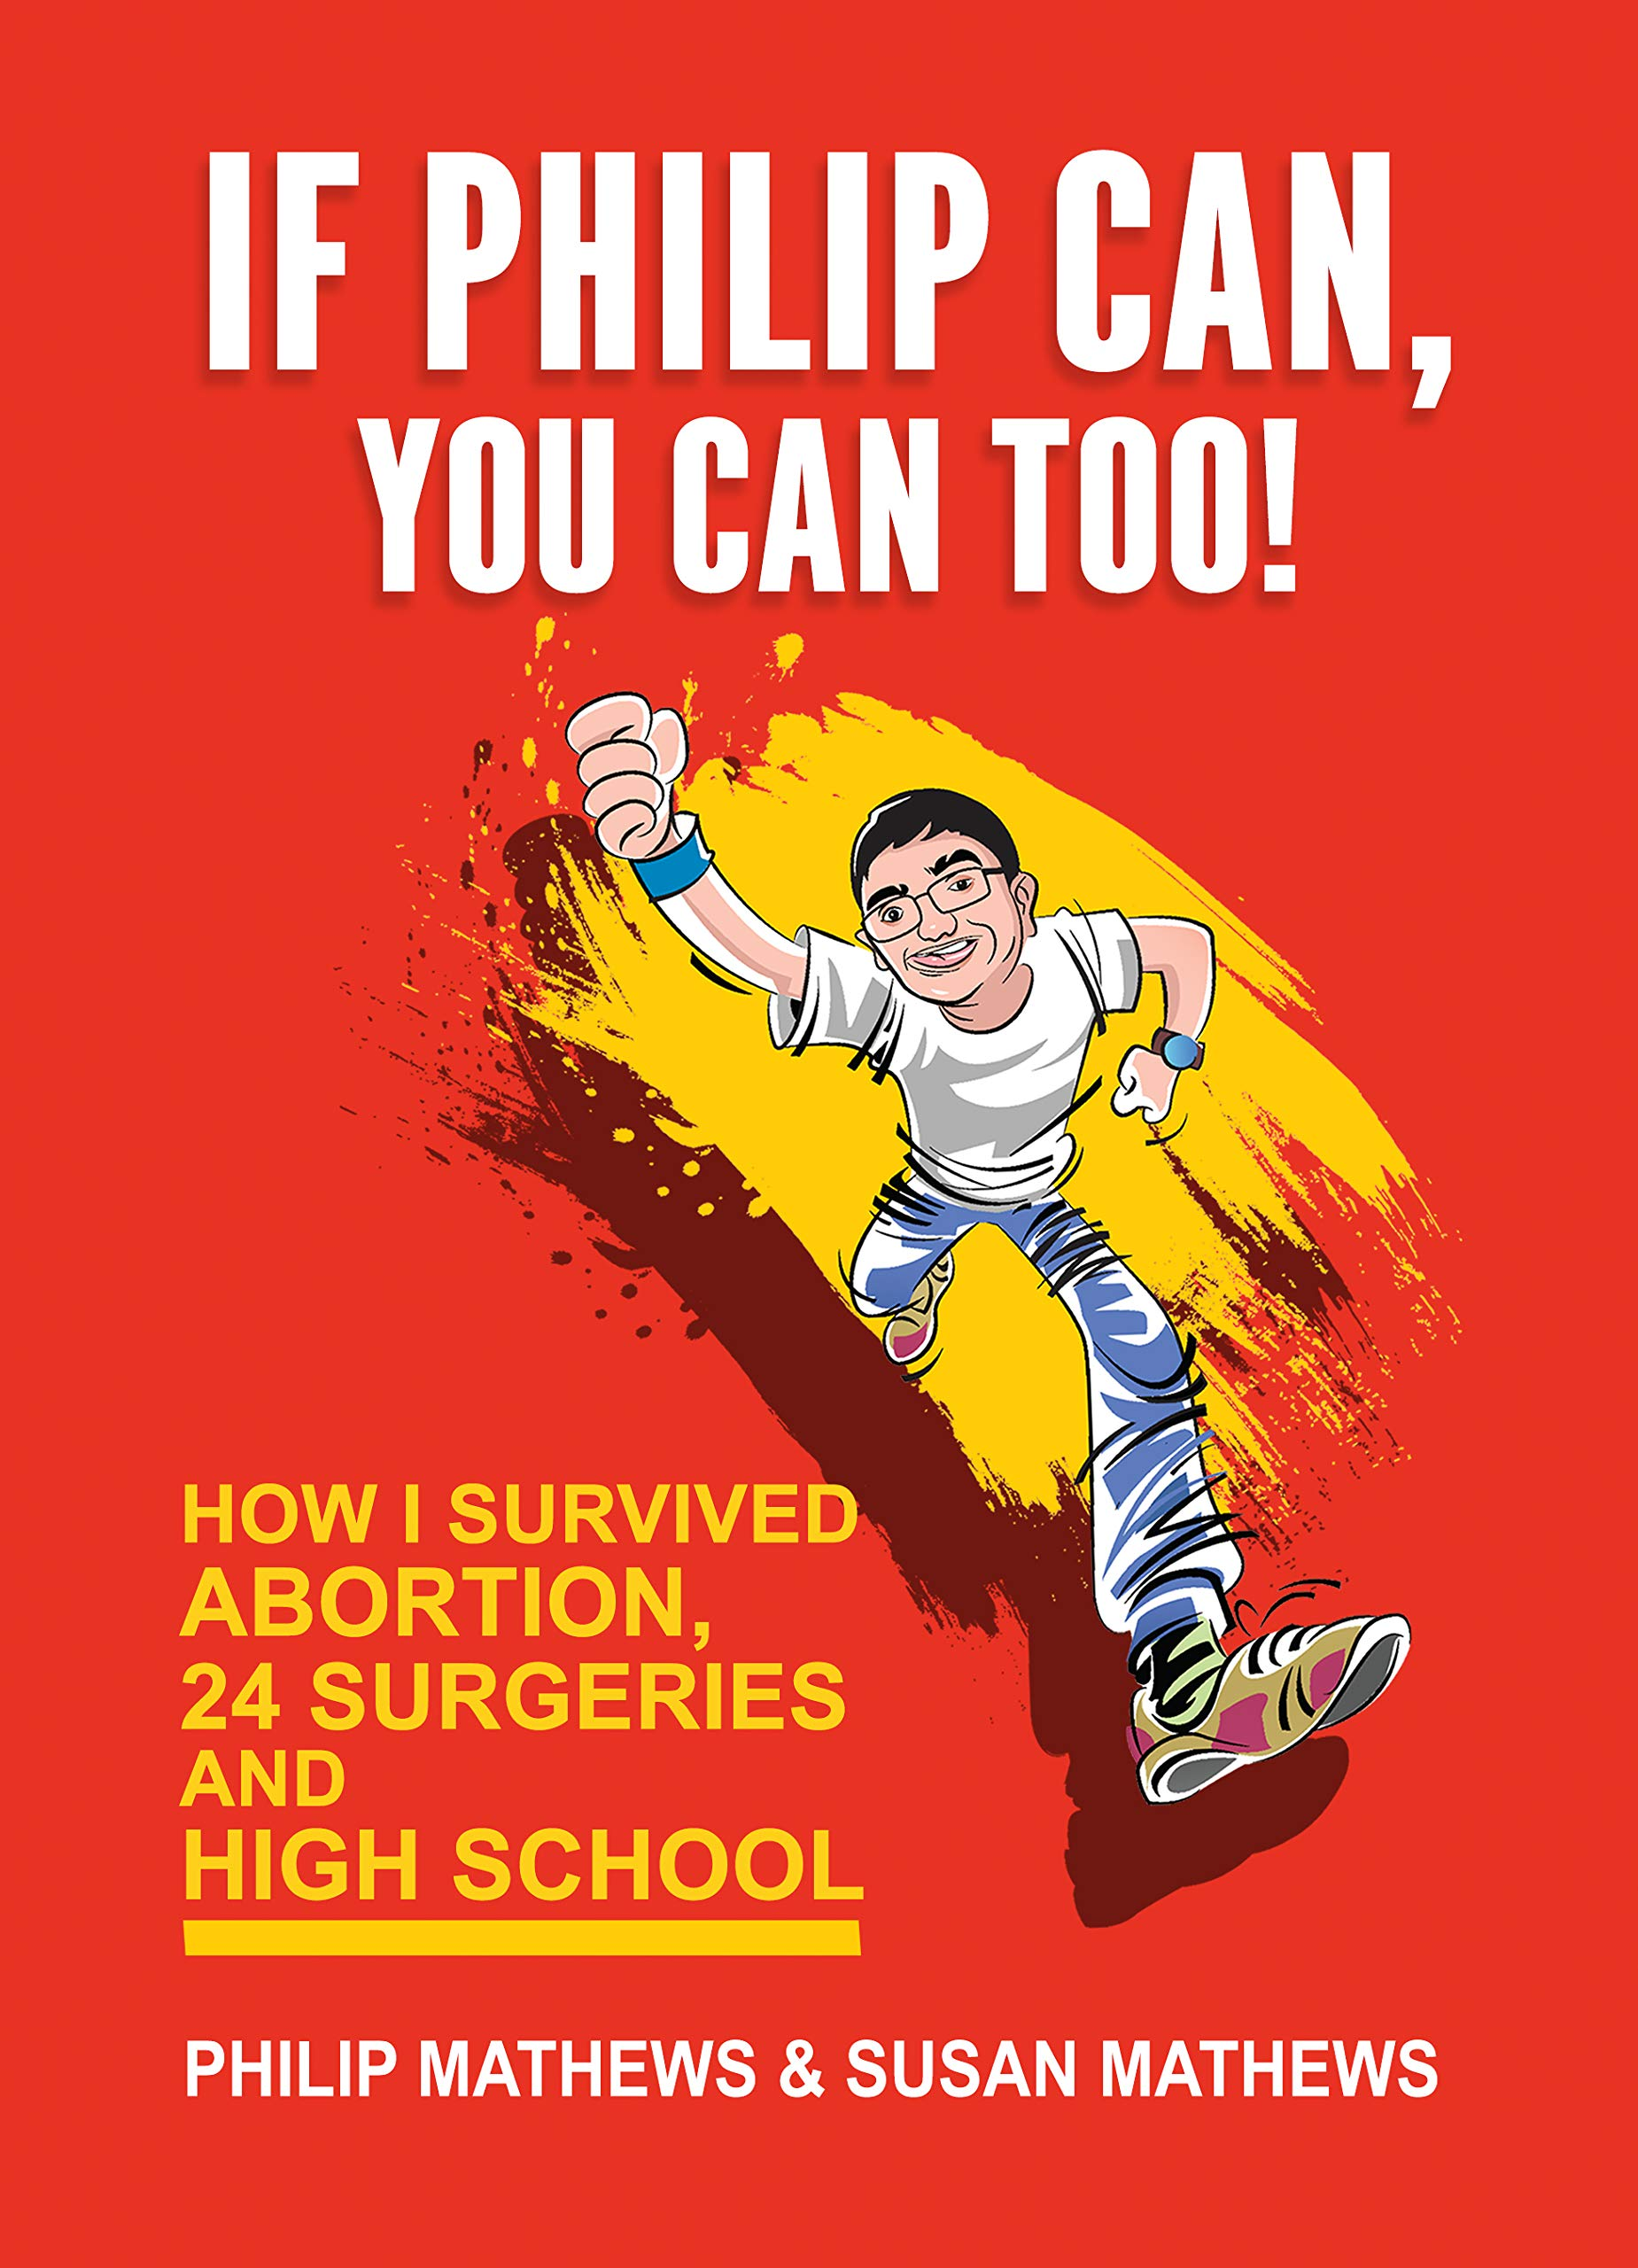 If Philip Can, You Can Too: How I Survived Abortion, 24 Surgeries and High School